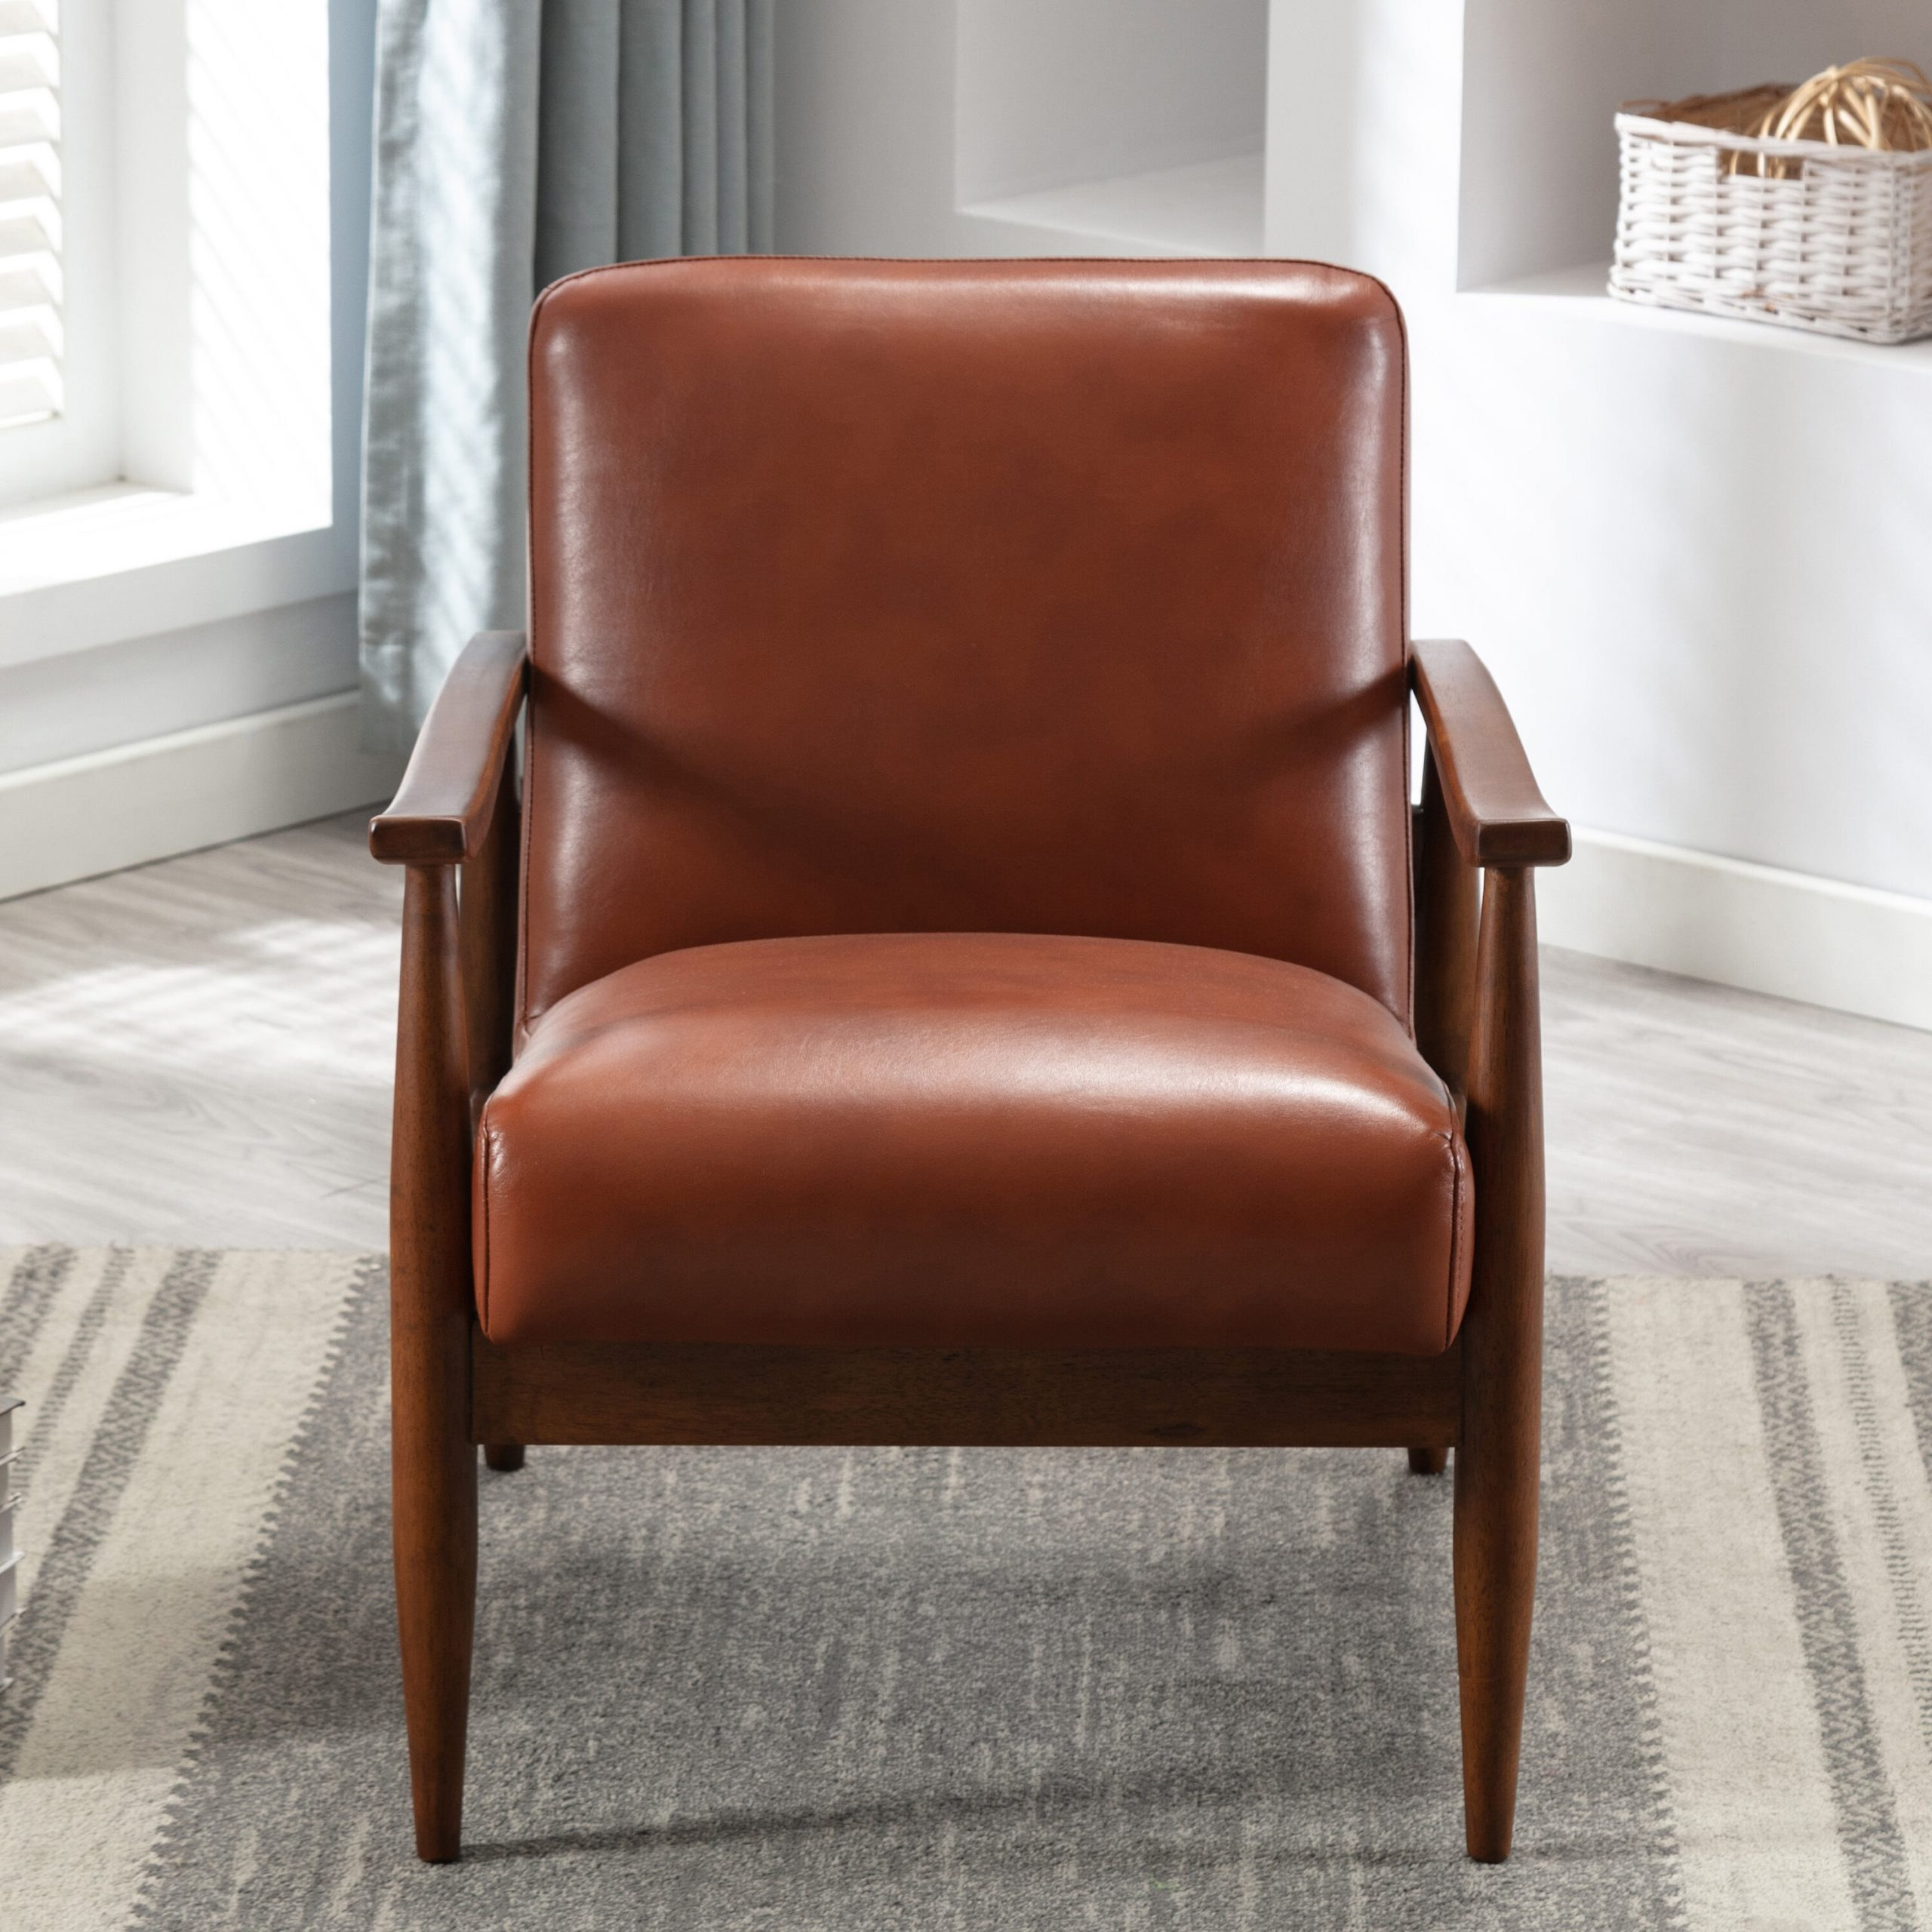 Faux Leather George Oliver Accent Chairs You'Ll Love In 2021 Regarding Marisa Faux Leather Wingback Chairs (Photo 6 of 15)